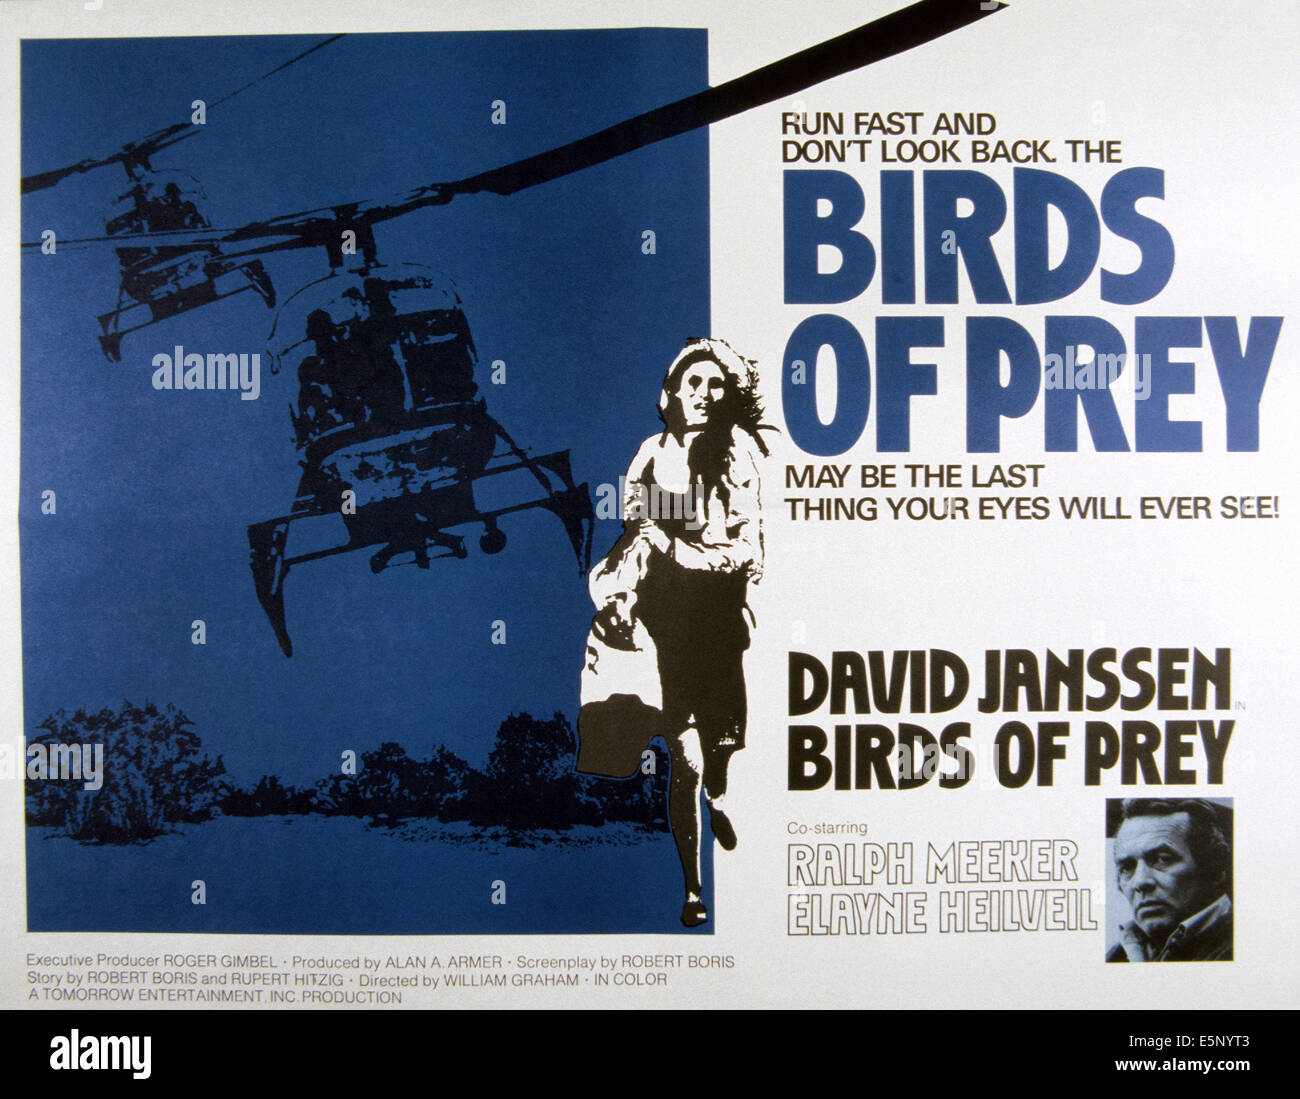 BIRDS OF PREY, David Janssen (unten), 1973 Stockbild